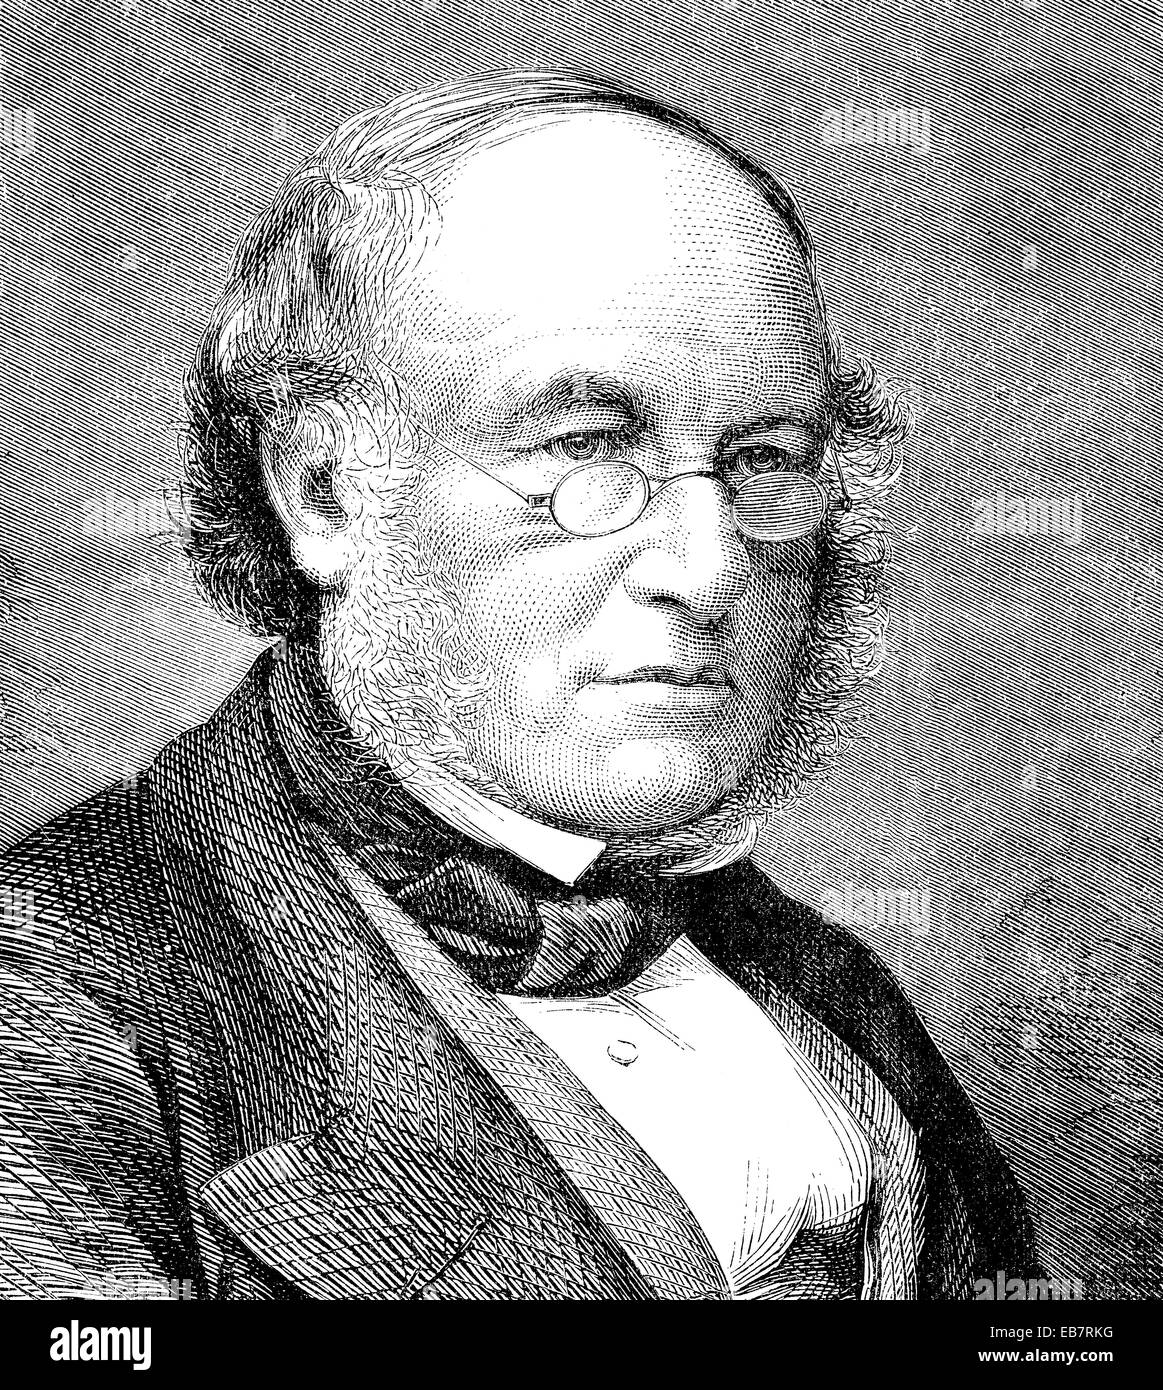 Sir Rowland Hill, 1795 - 1879, an English teacher, inventor and social reformer, reformer of the postal system, - Stock Image